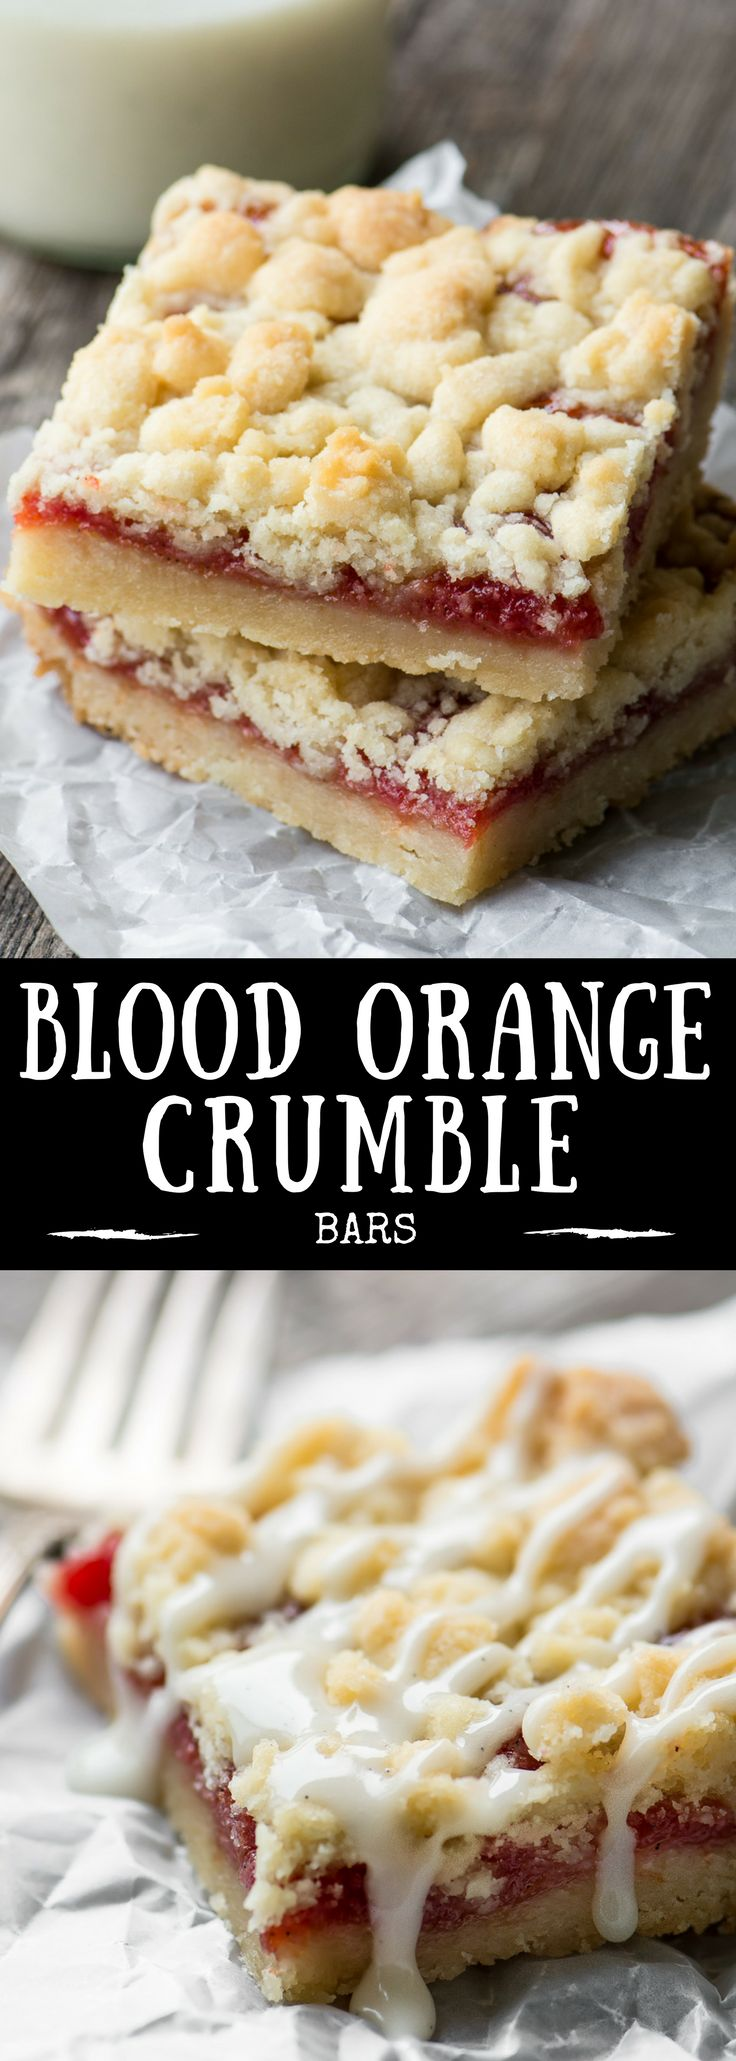 I'm squeezing every last delicious drop out of blood orange season with these Blood Orange Crumble Bars ~ the sweet tart filling is layered into a buttery shortbread crumble dough and what comes out of the oven is nothing short of awesome. |breakfast | dessert | citrus | Jam